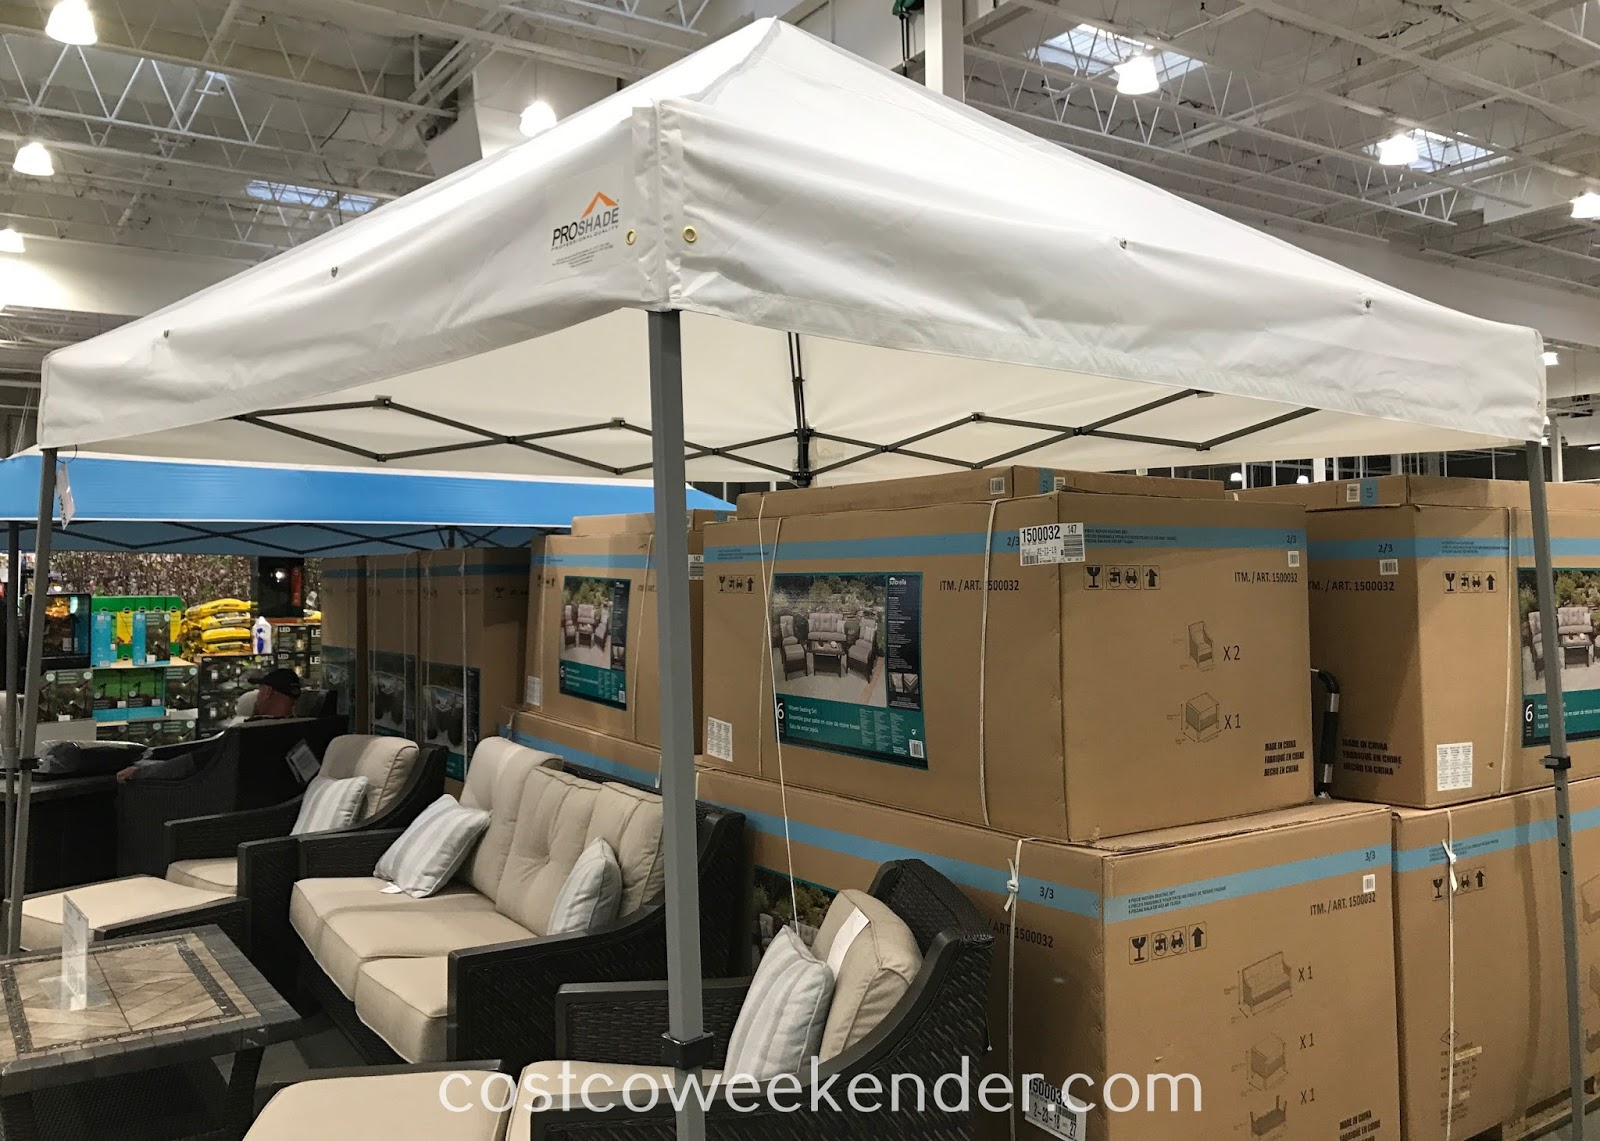 Keep cool while being outside with the ProShade Pop-Up Canopy